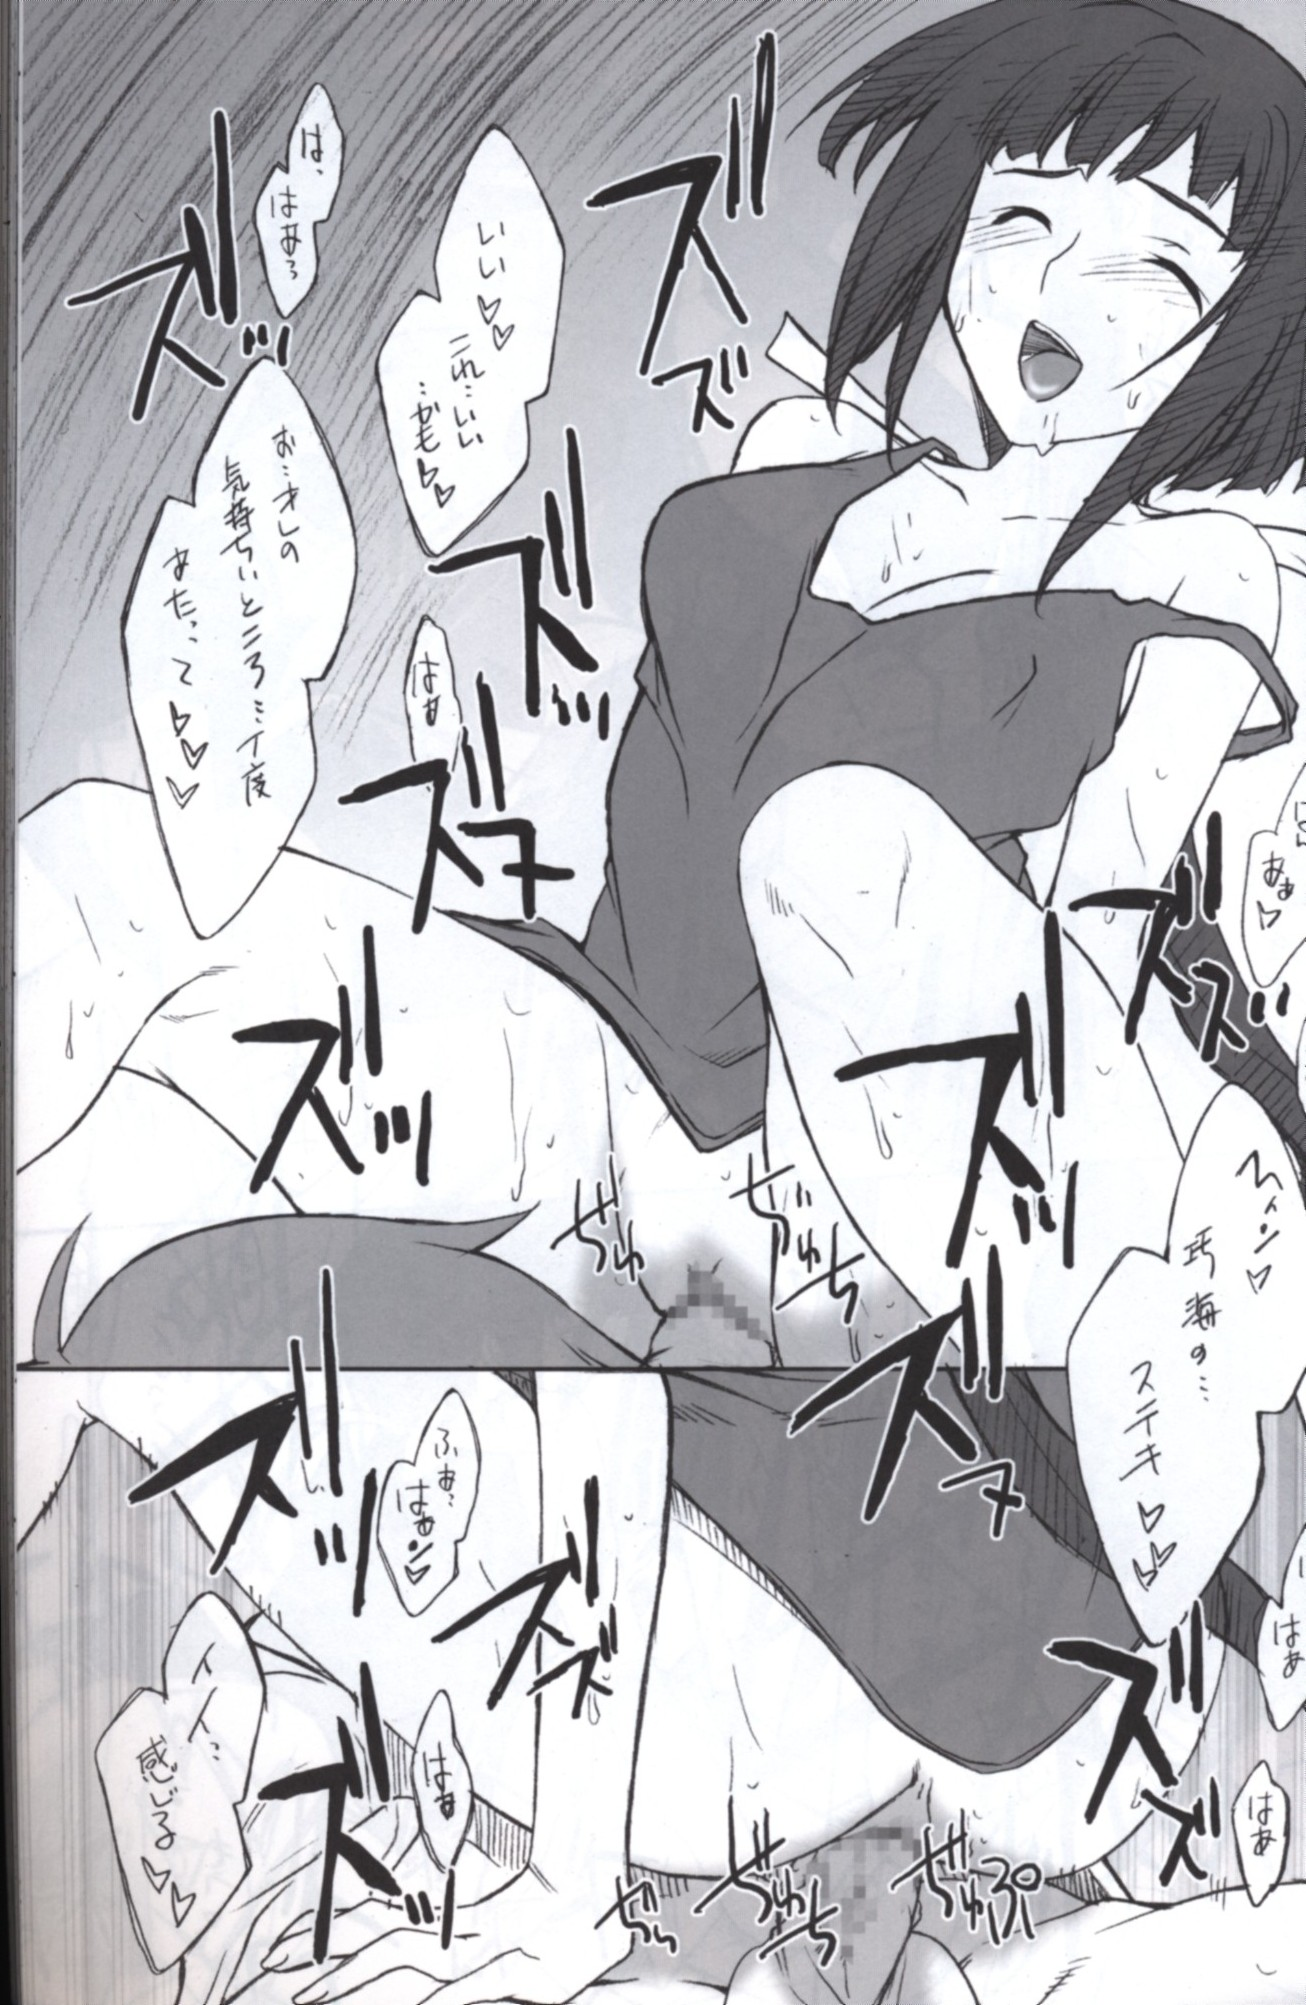 [Adult] Doujinshi - Compilation - Mai-HiME (舞HIME総集編 HIME_MAMIRE 上巻) / P-FOREST